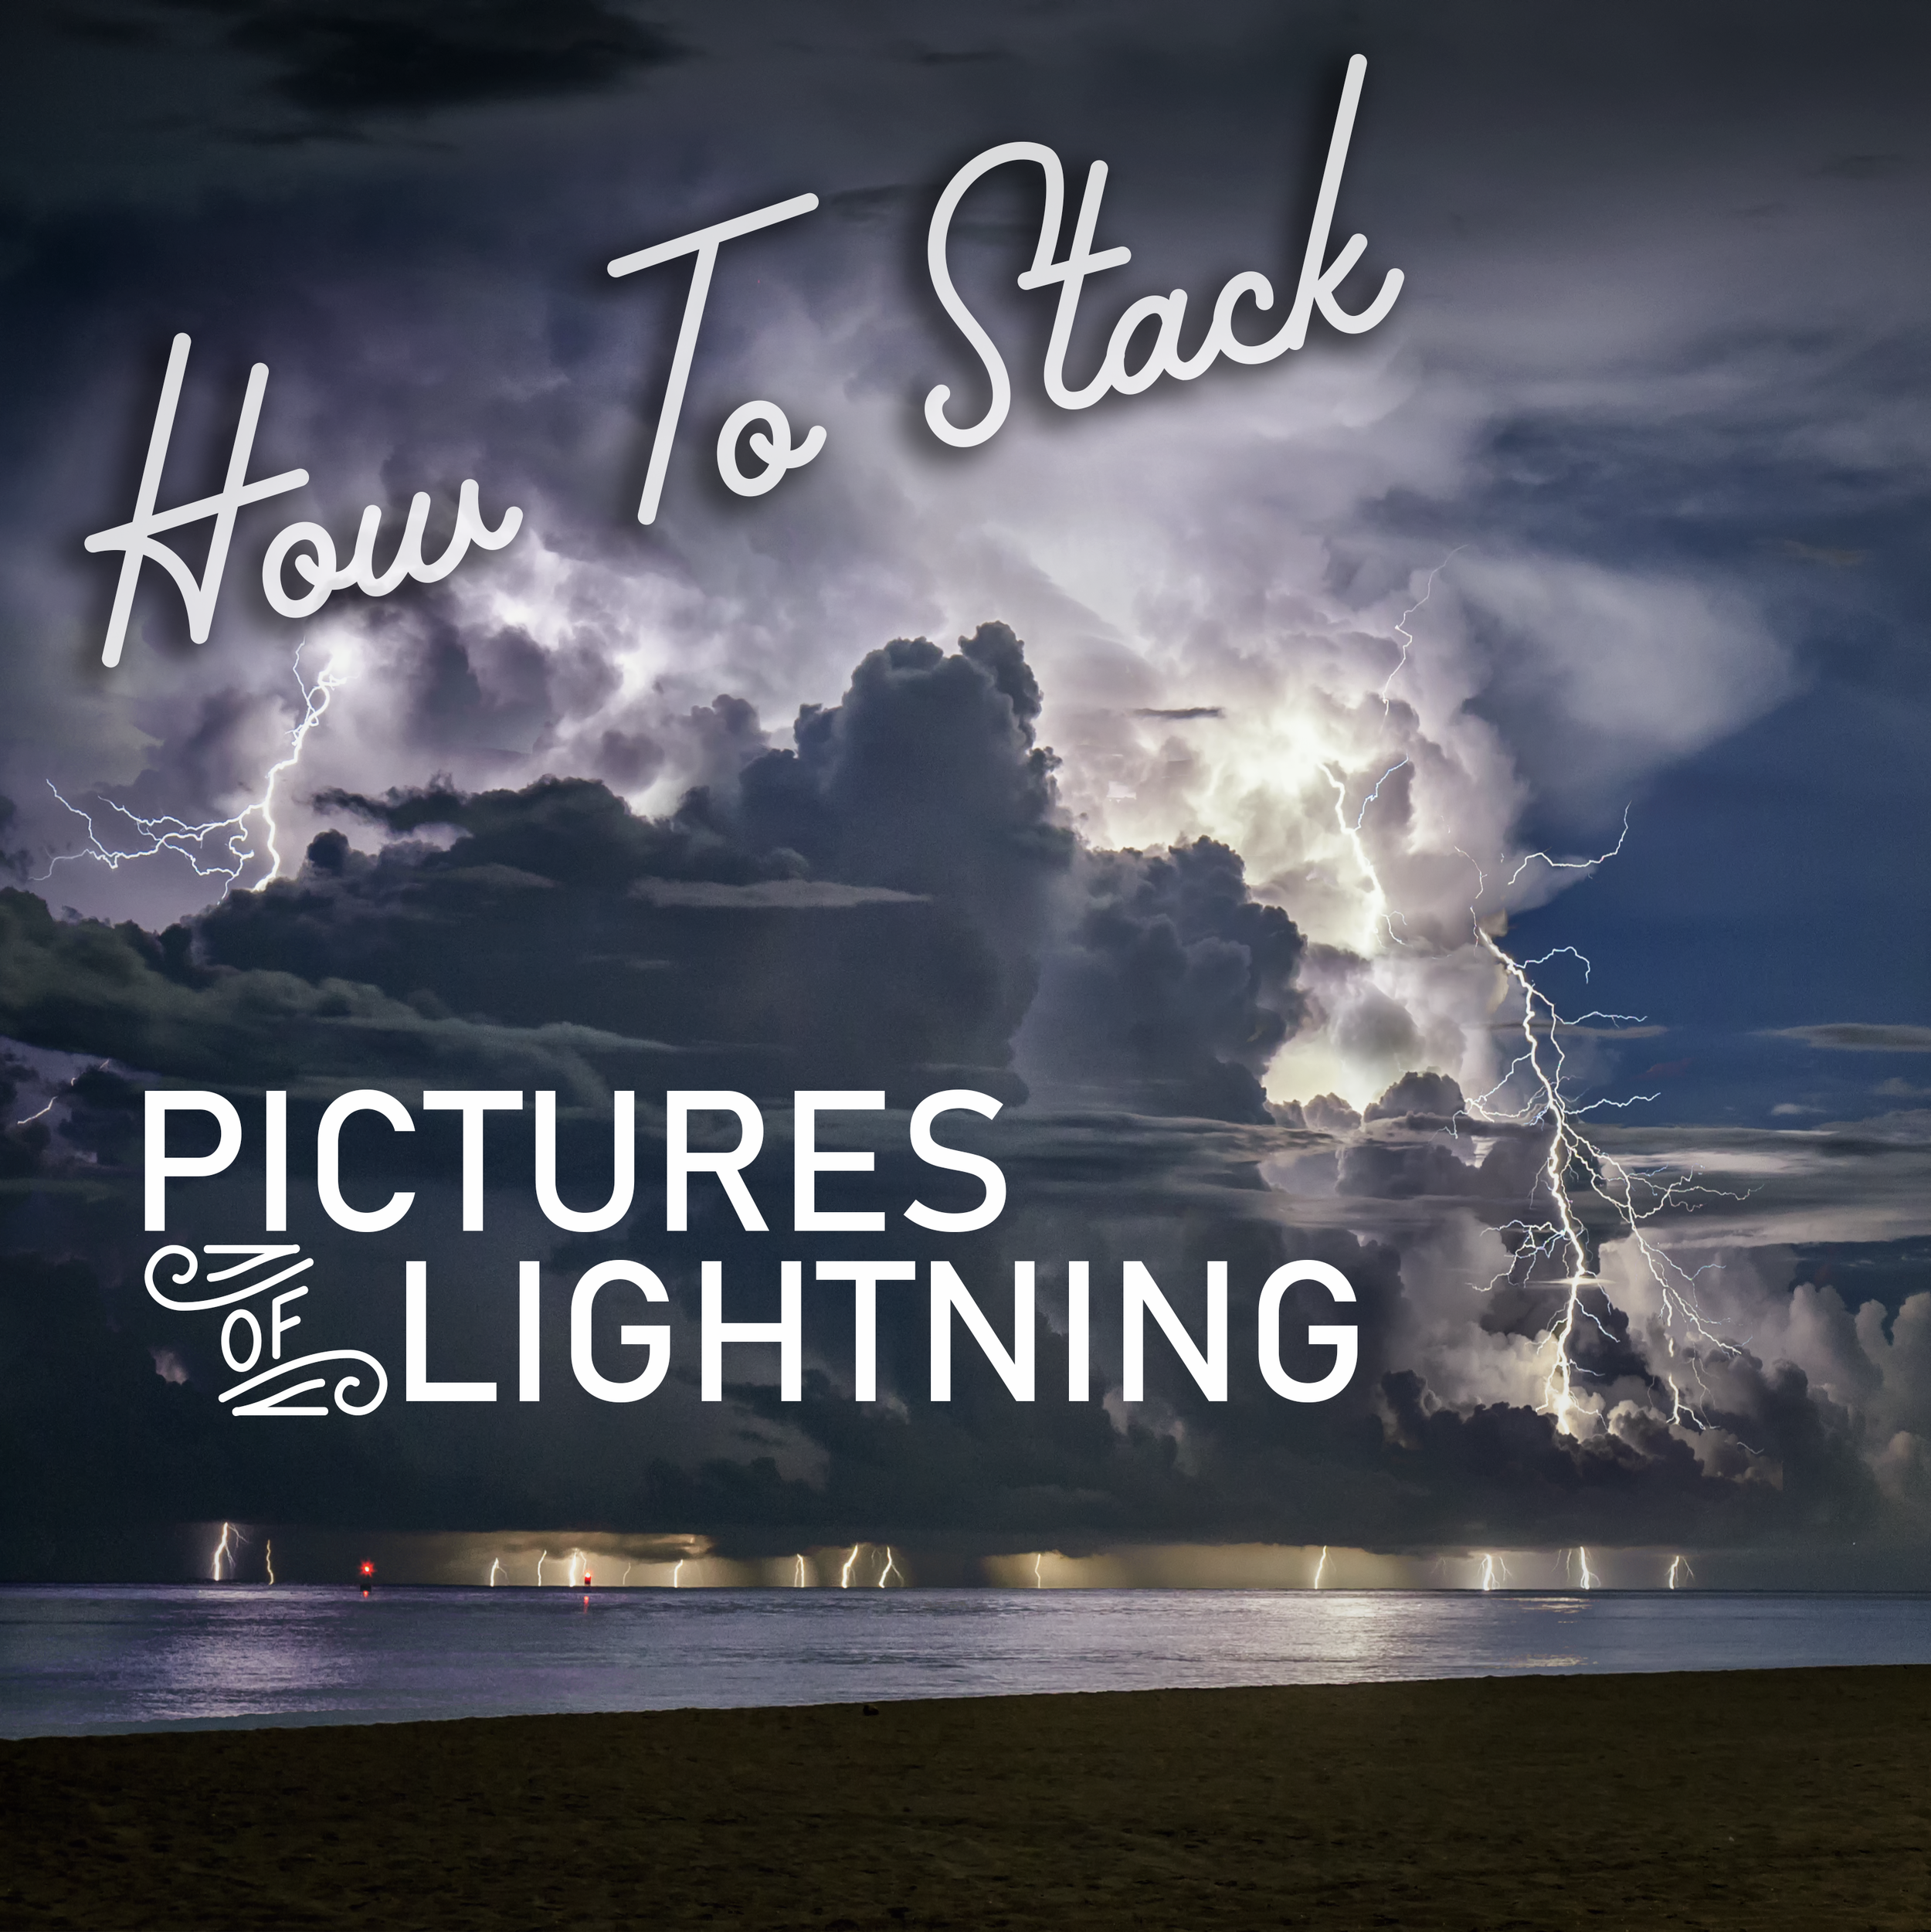 how to stack pictures photos of lightning